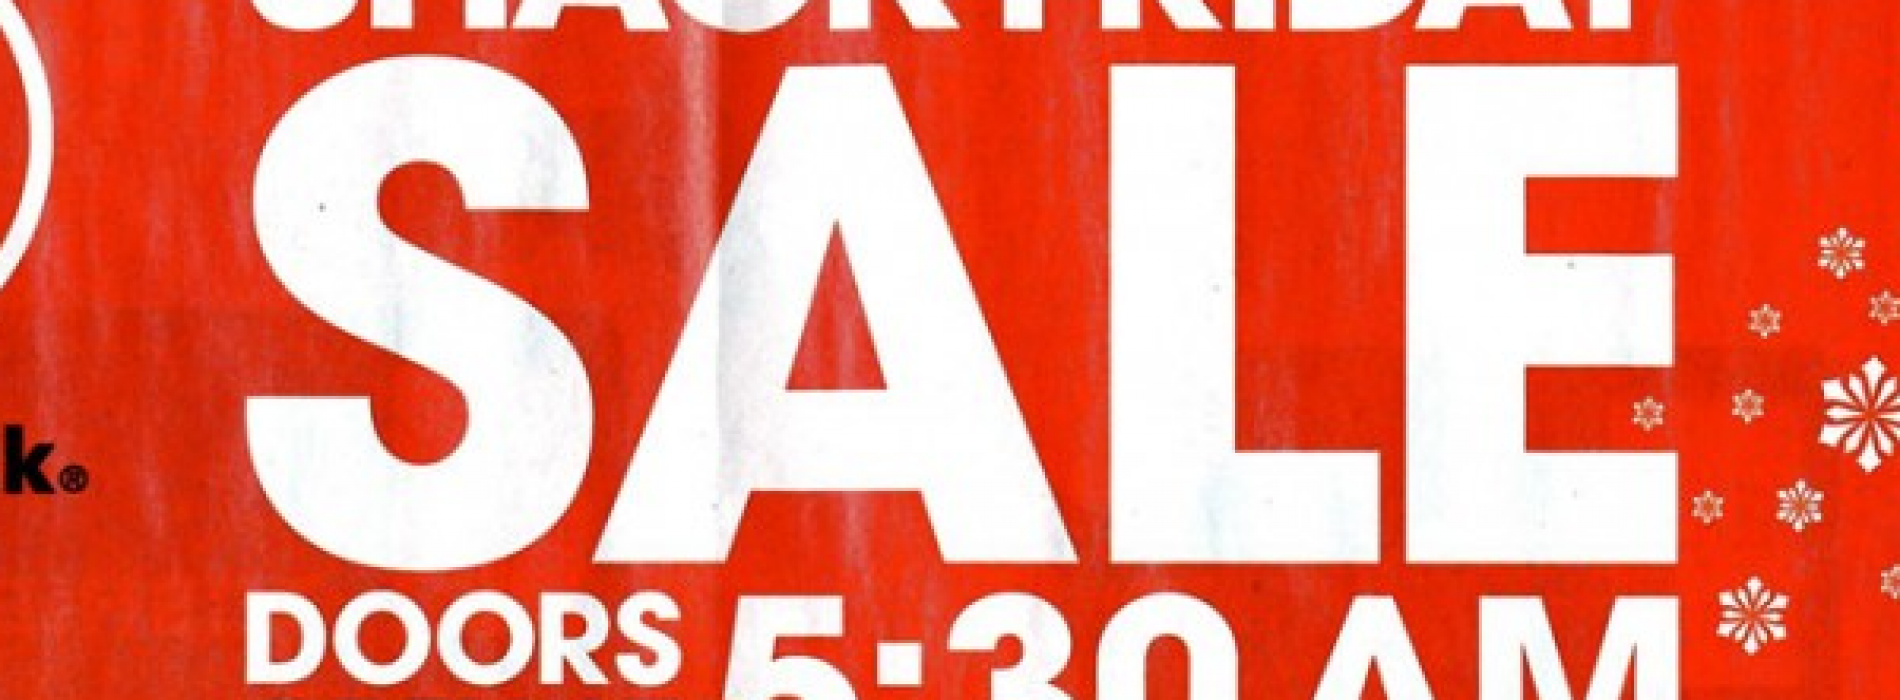 Radio Shack Black Friday ad features $50 Samsung Galaxy S II (AT&T)